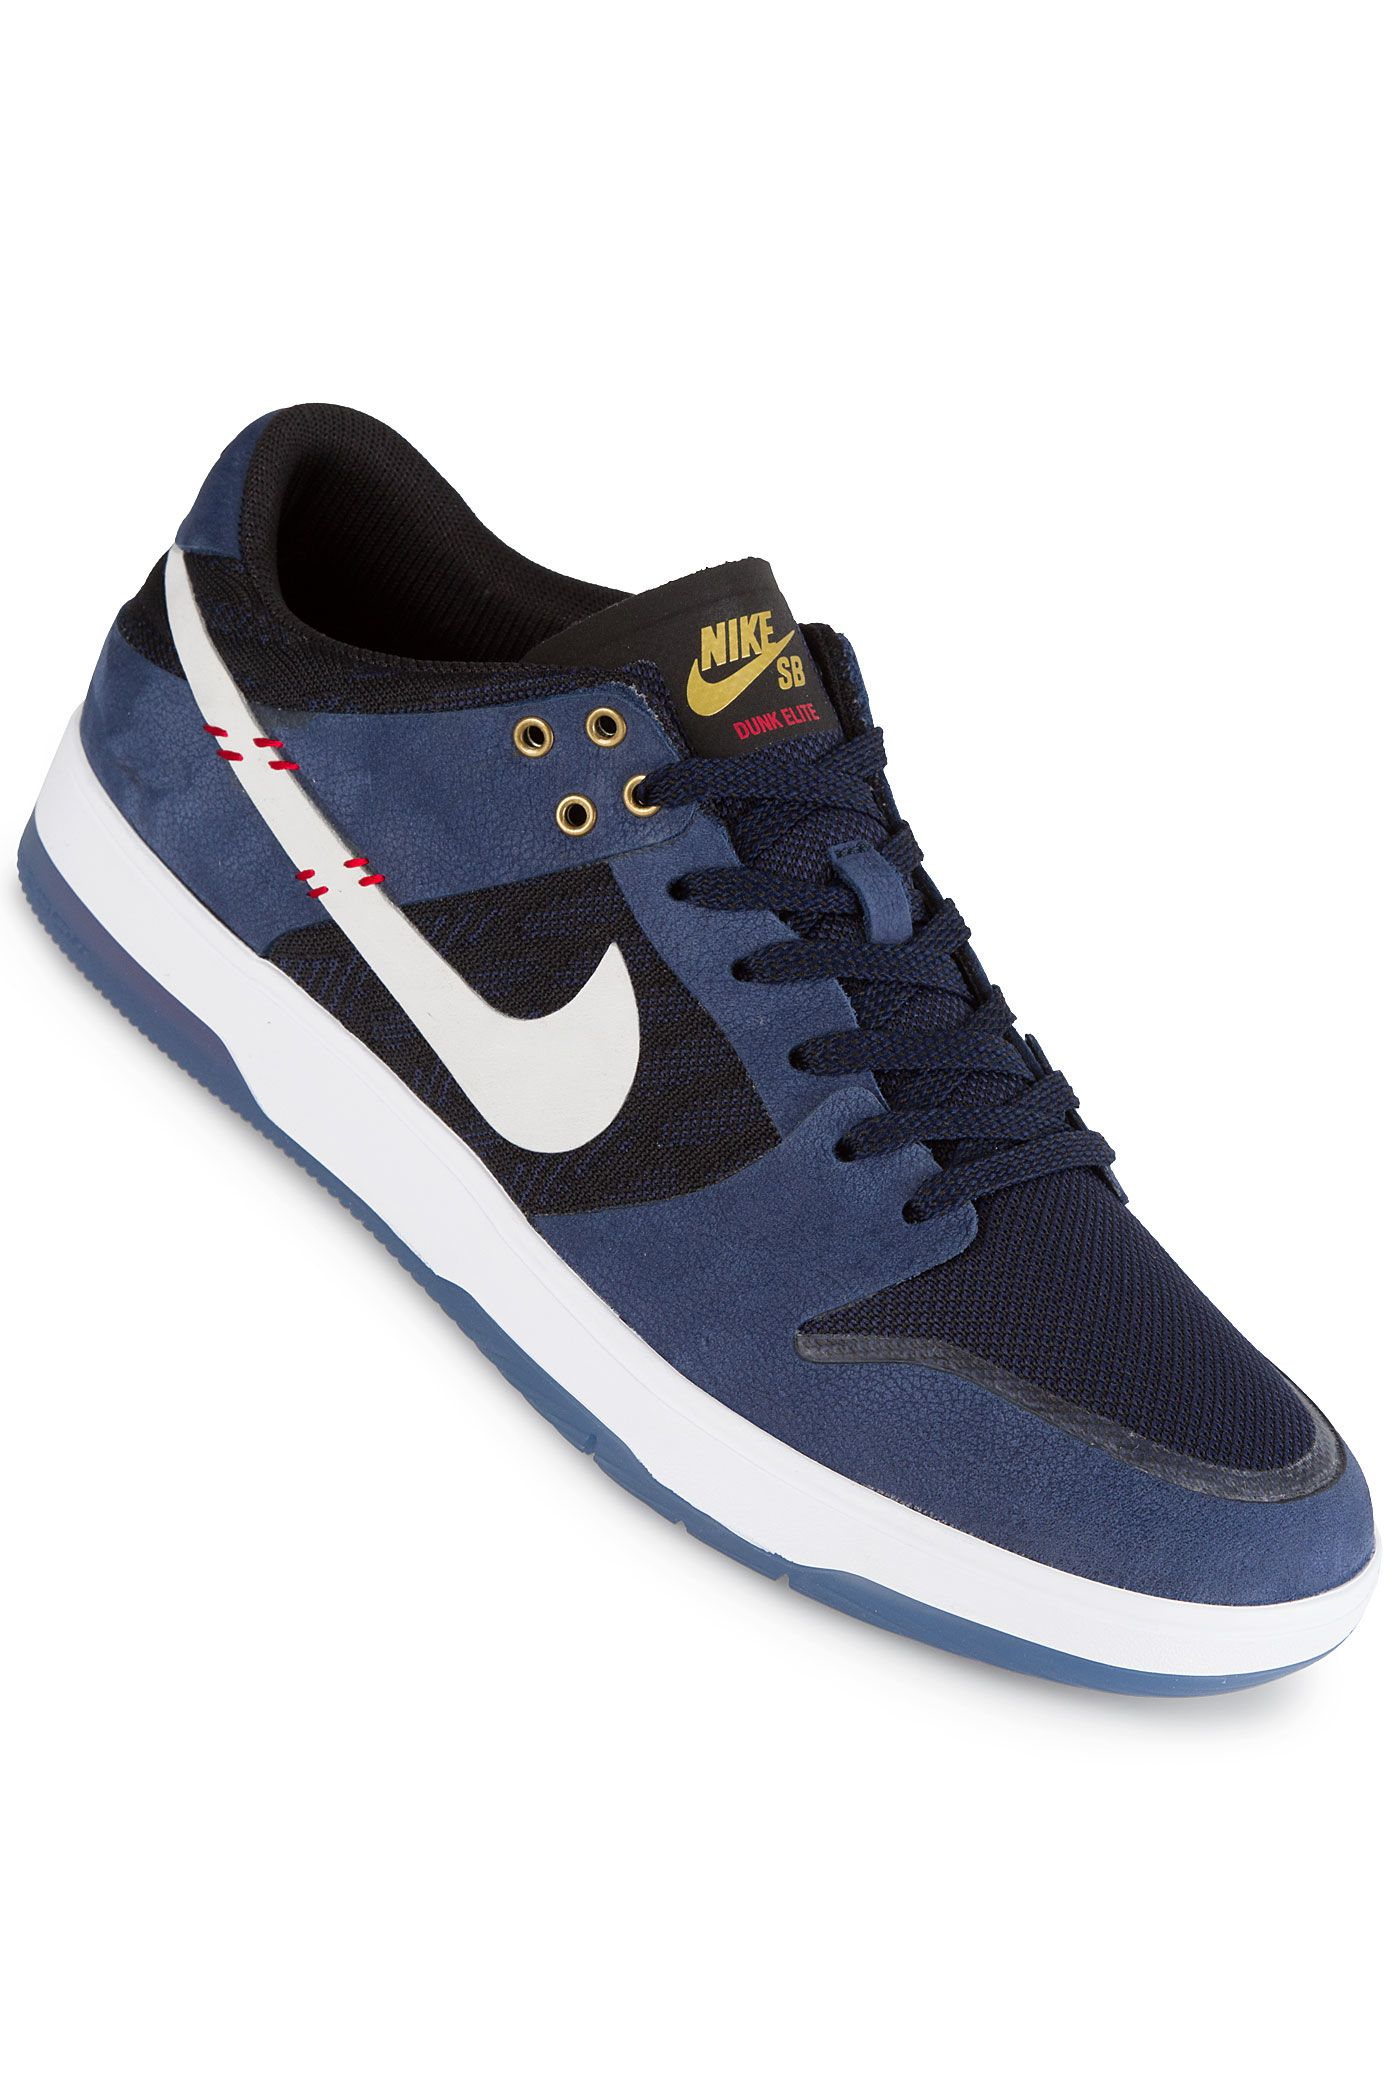 Nike SB x NBA Dunk High Pro Schuh (black black college navy)  e925e4daf